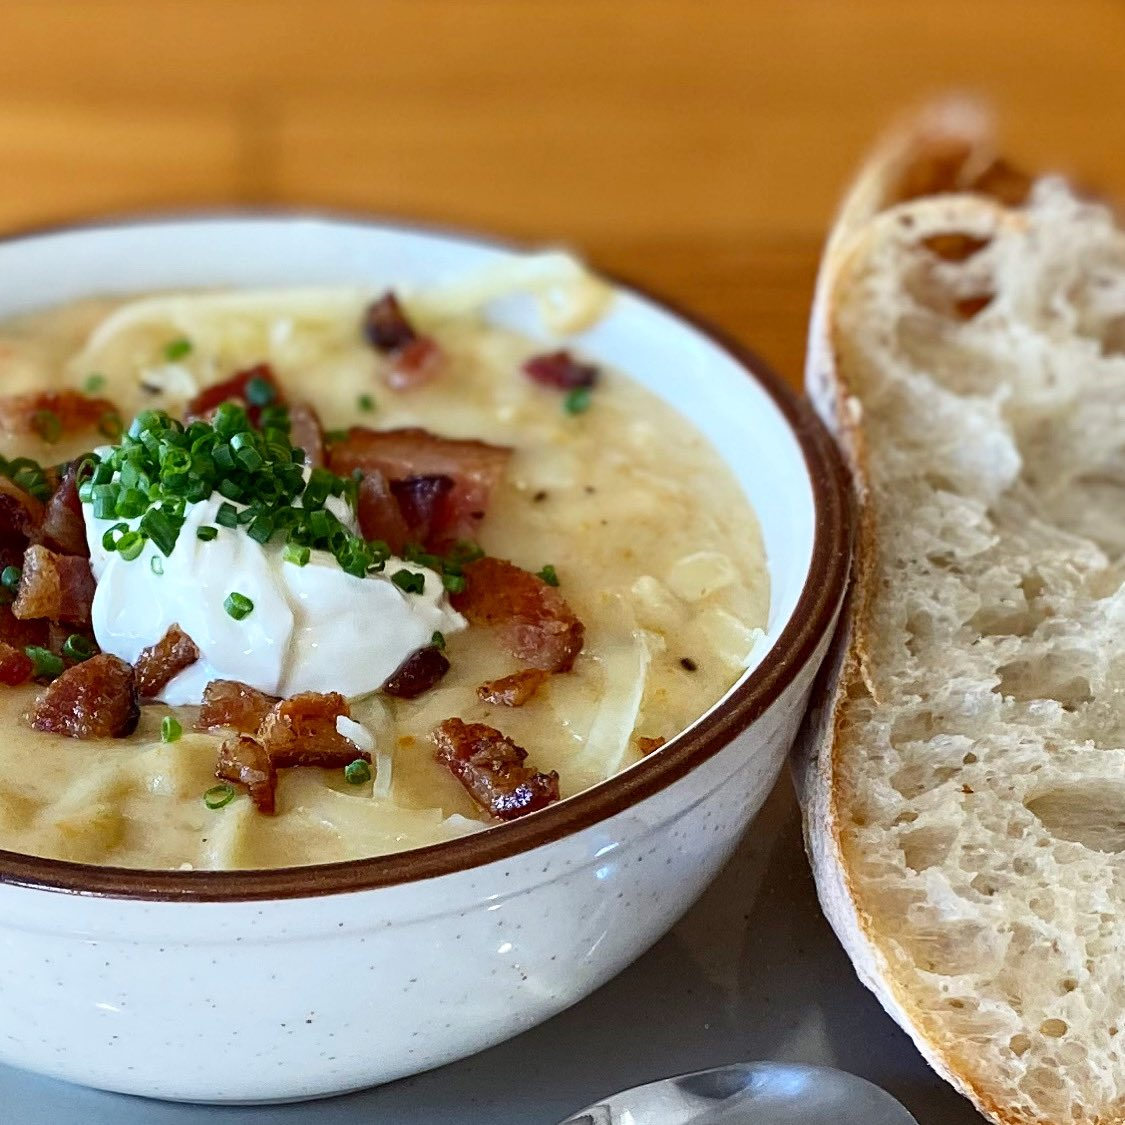 Thick thick thick. Loaded potato chowder with cheddar, bacon, sour cream and chives. Served with a hunk of Wheatfields ciabatta for dunking.